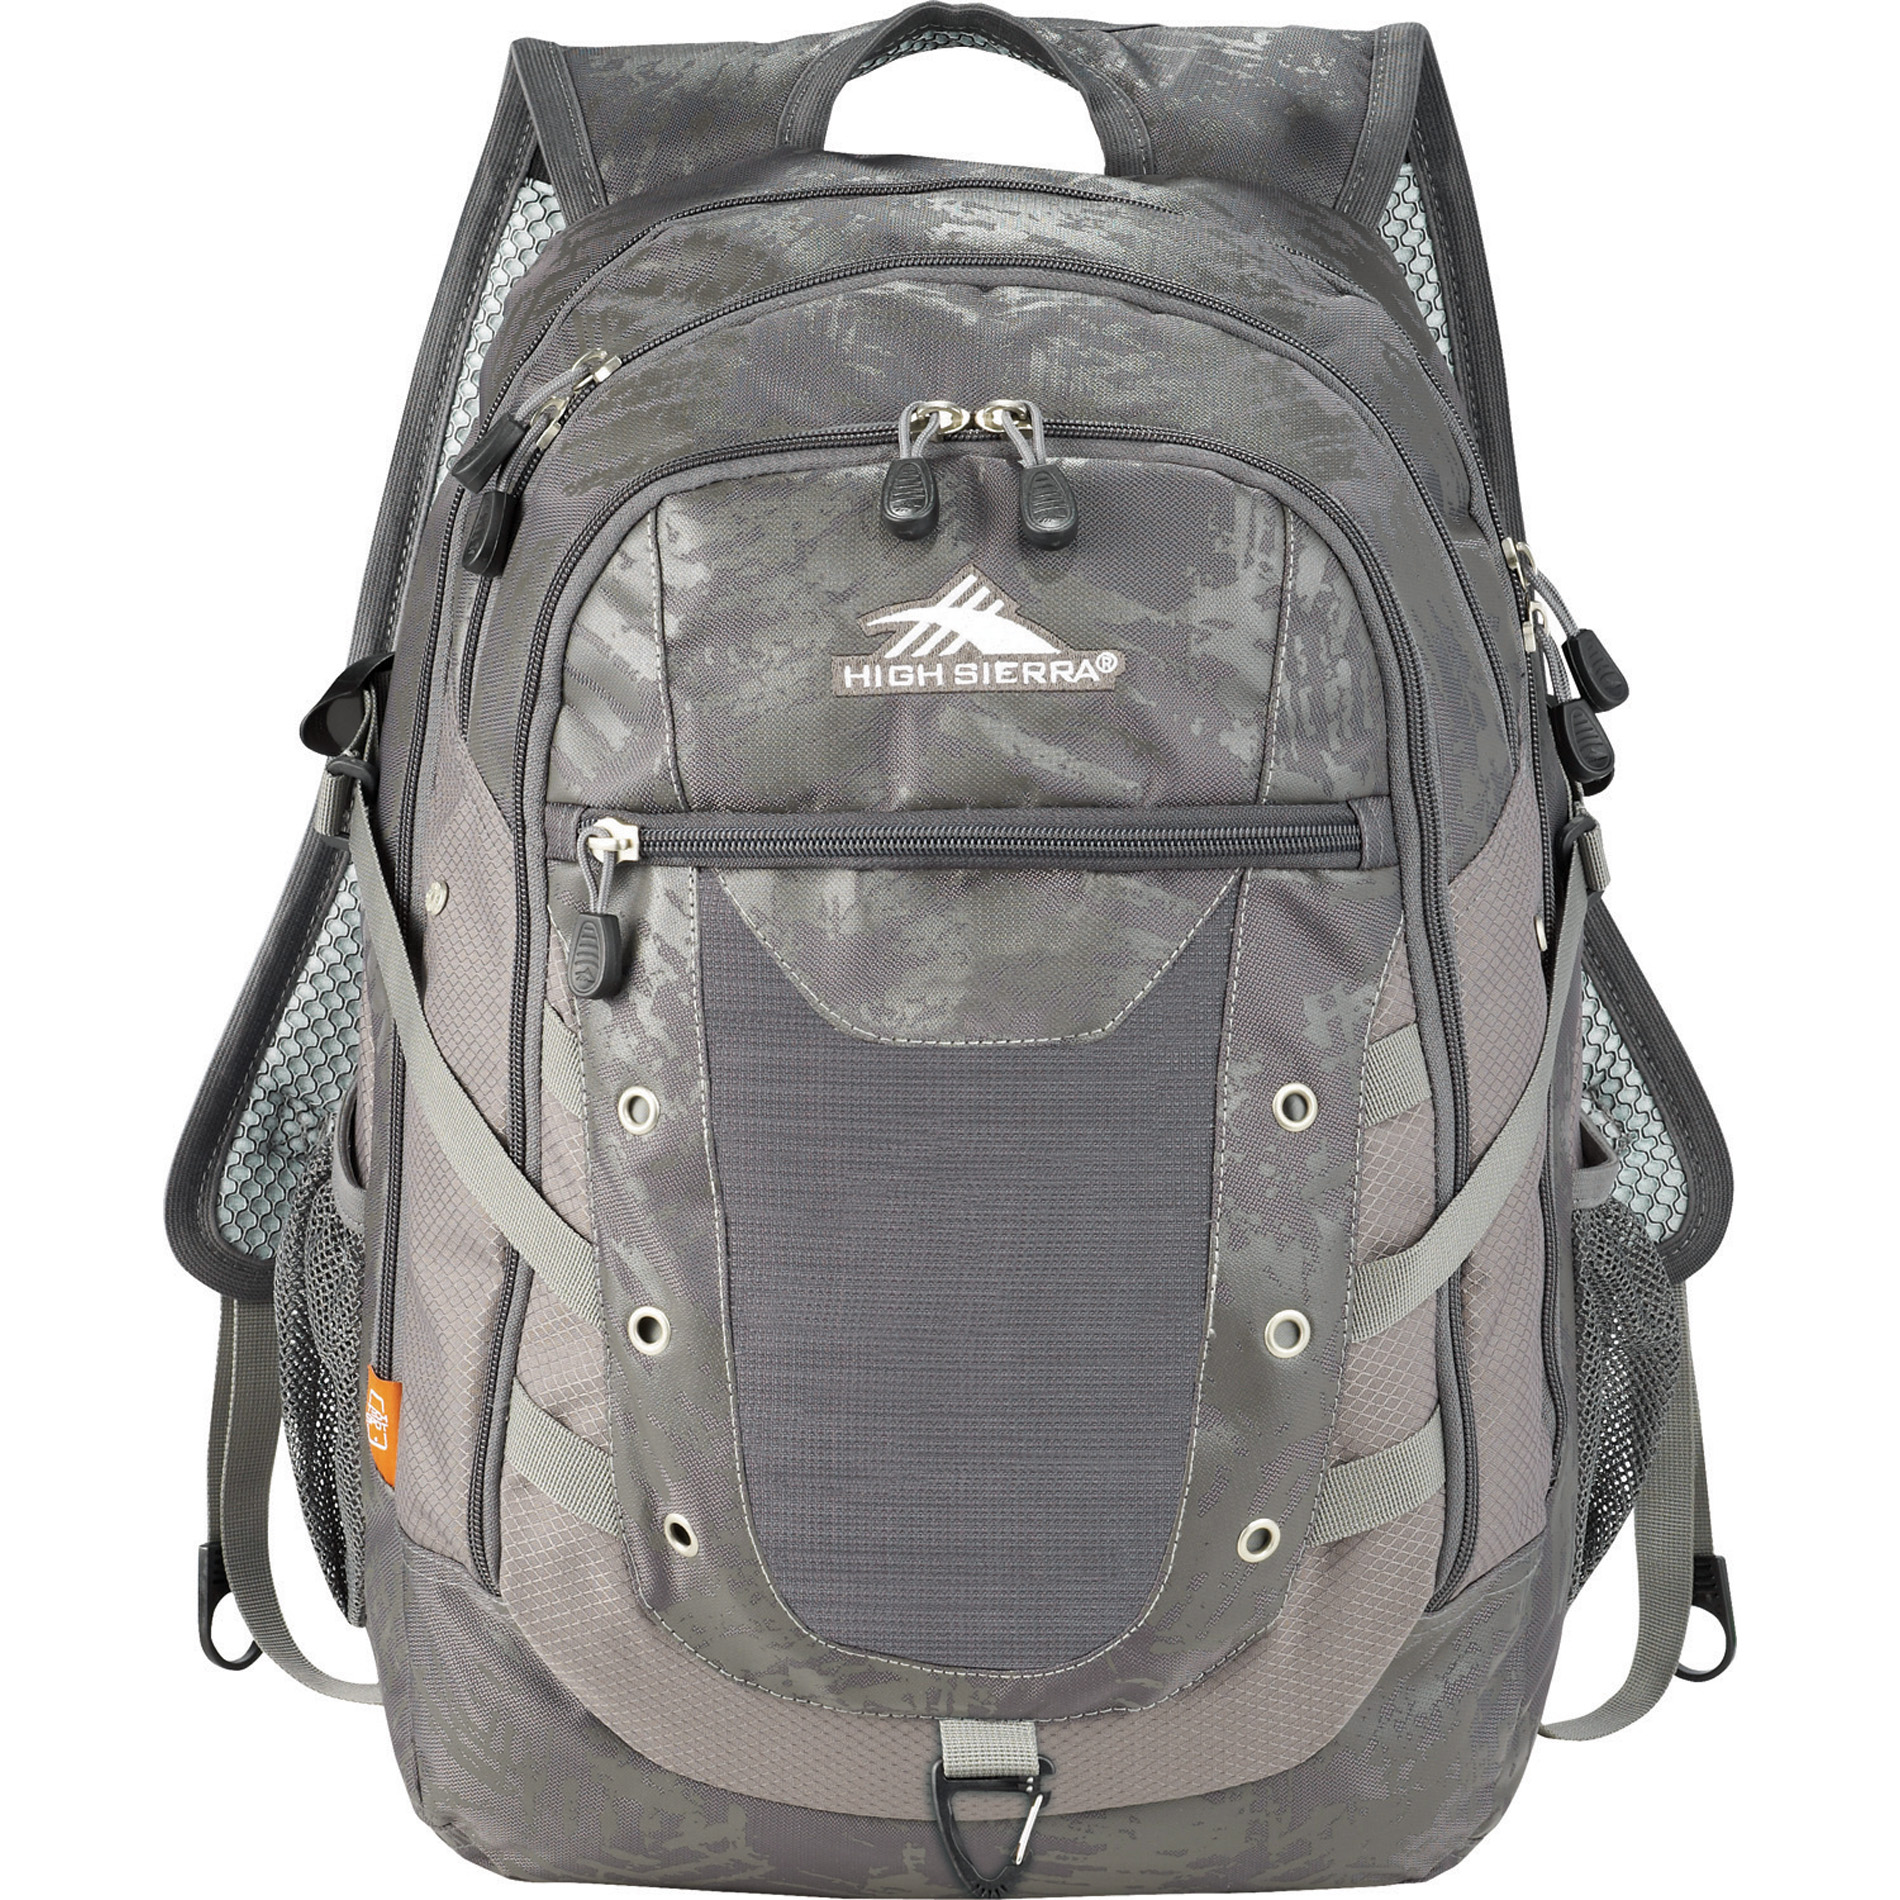 Silver High Sierra Tactic 17 Computer Backpack